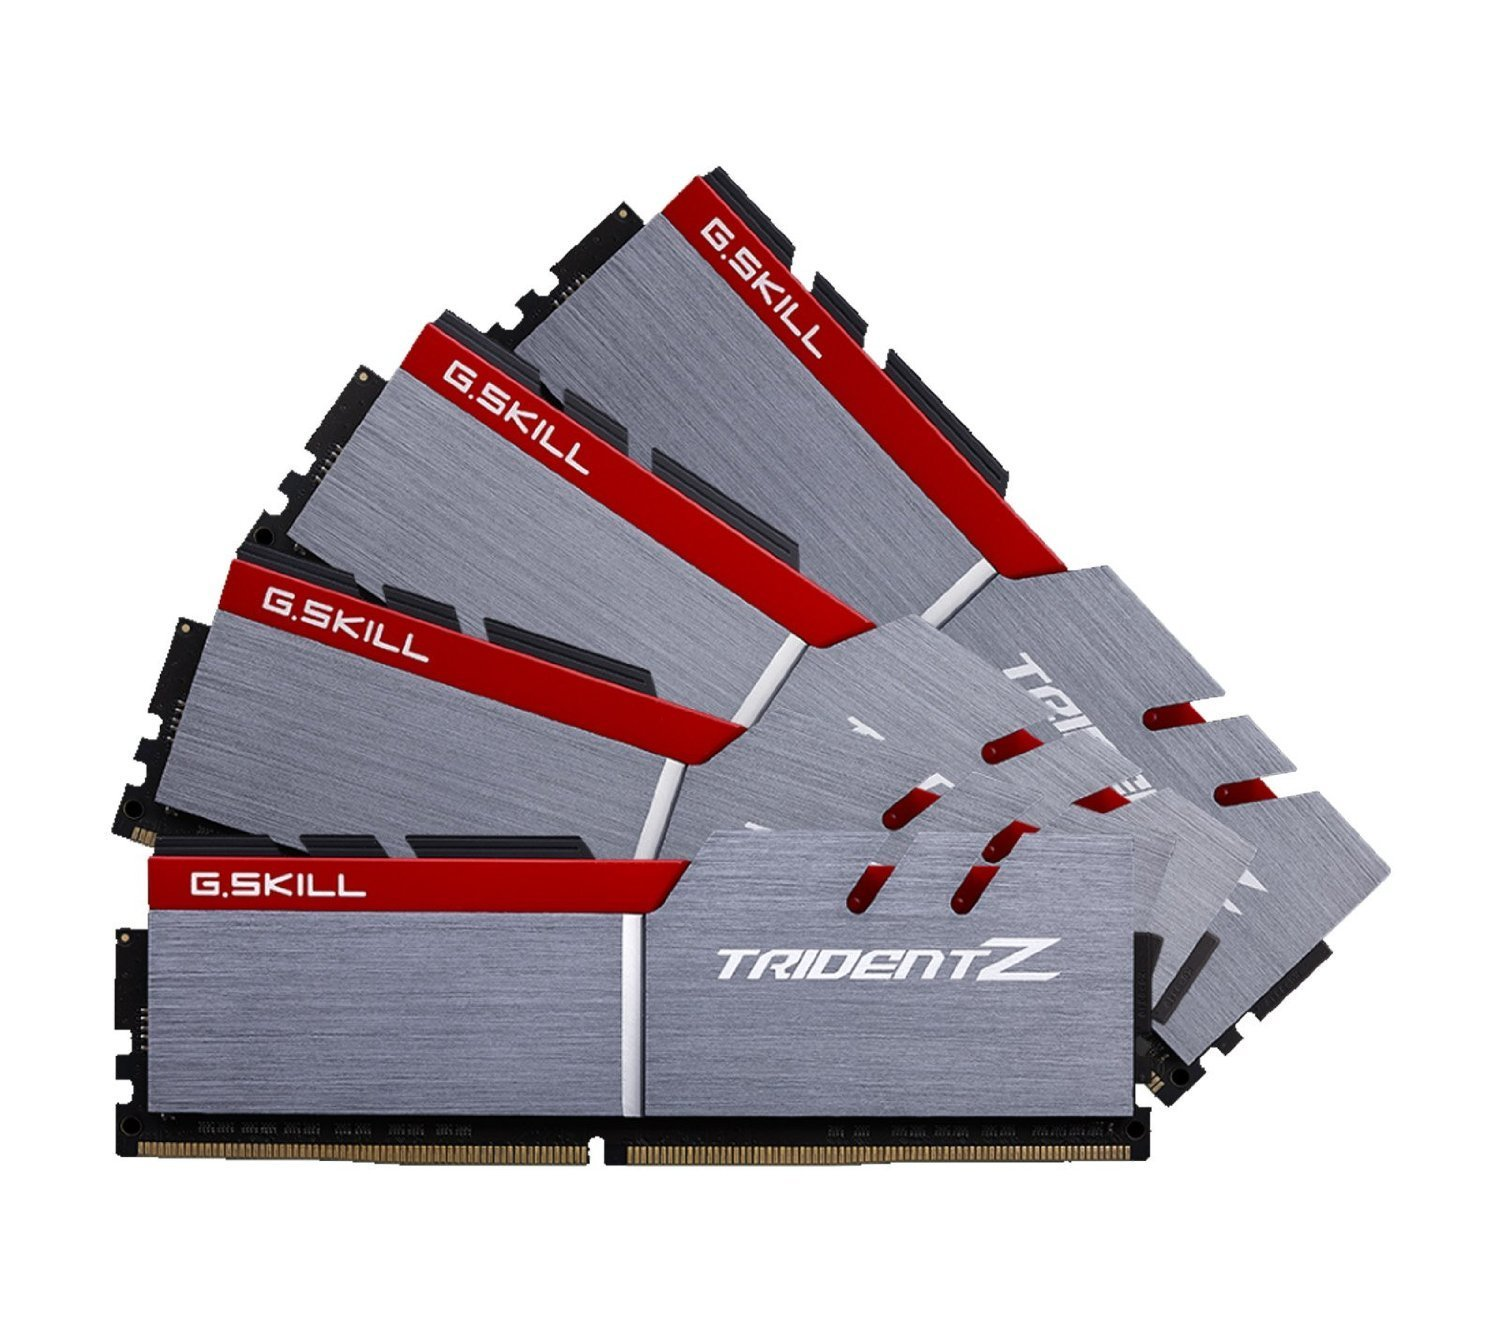 G.SKILL TridentZ Series 64GB (4 x 16GB) 288-Pin DDR4 3200Mhz (PC4 25600) Desktop Memory F4-3200C16Q-64GTZ